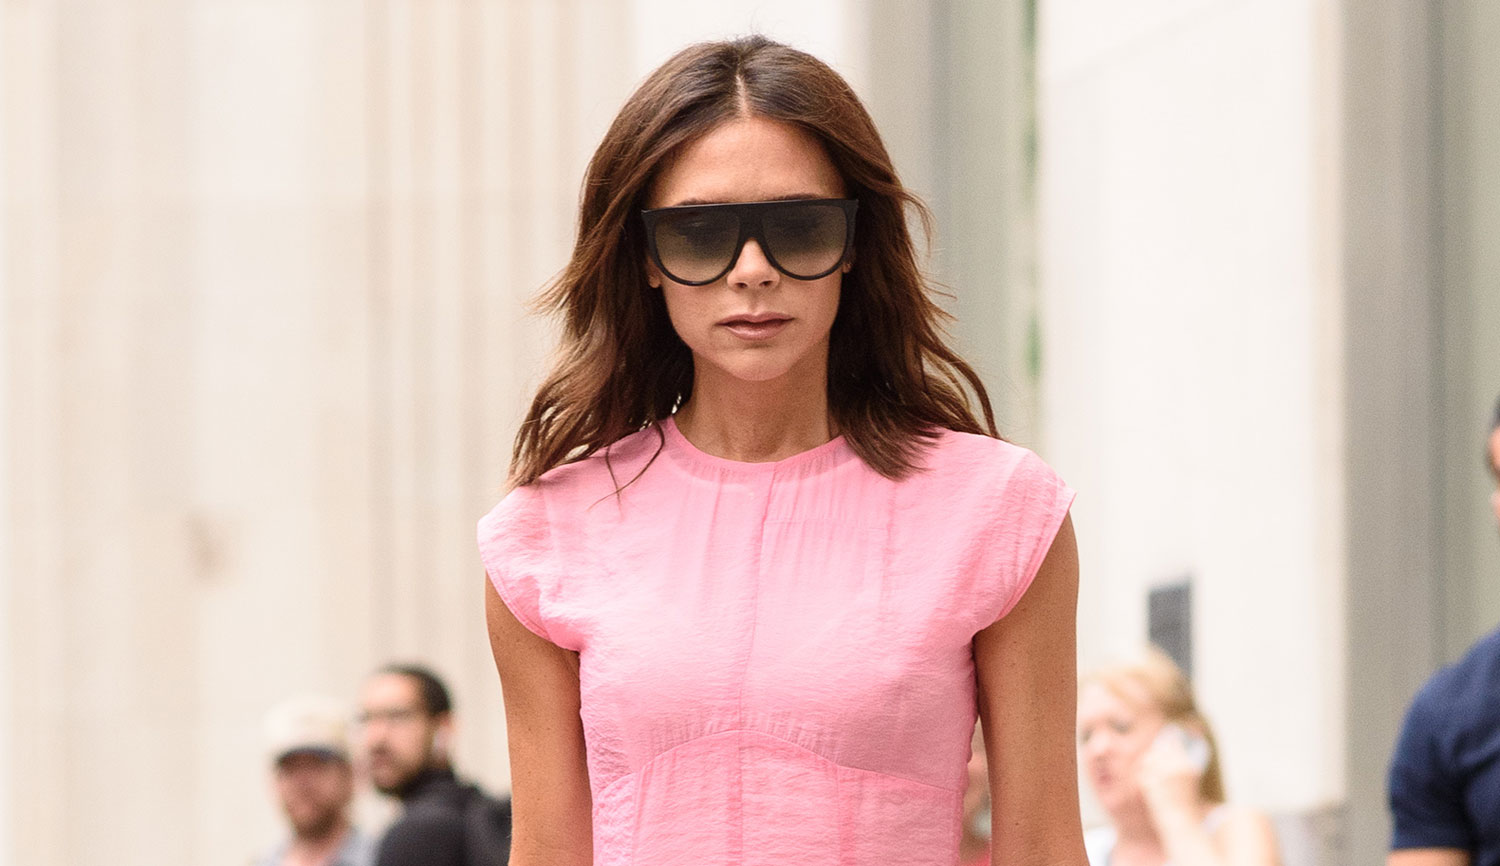 Victoria Beckham Is Making NYC Her Runway with Chic Fashion ...